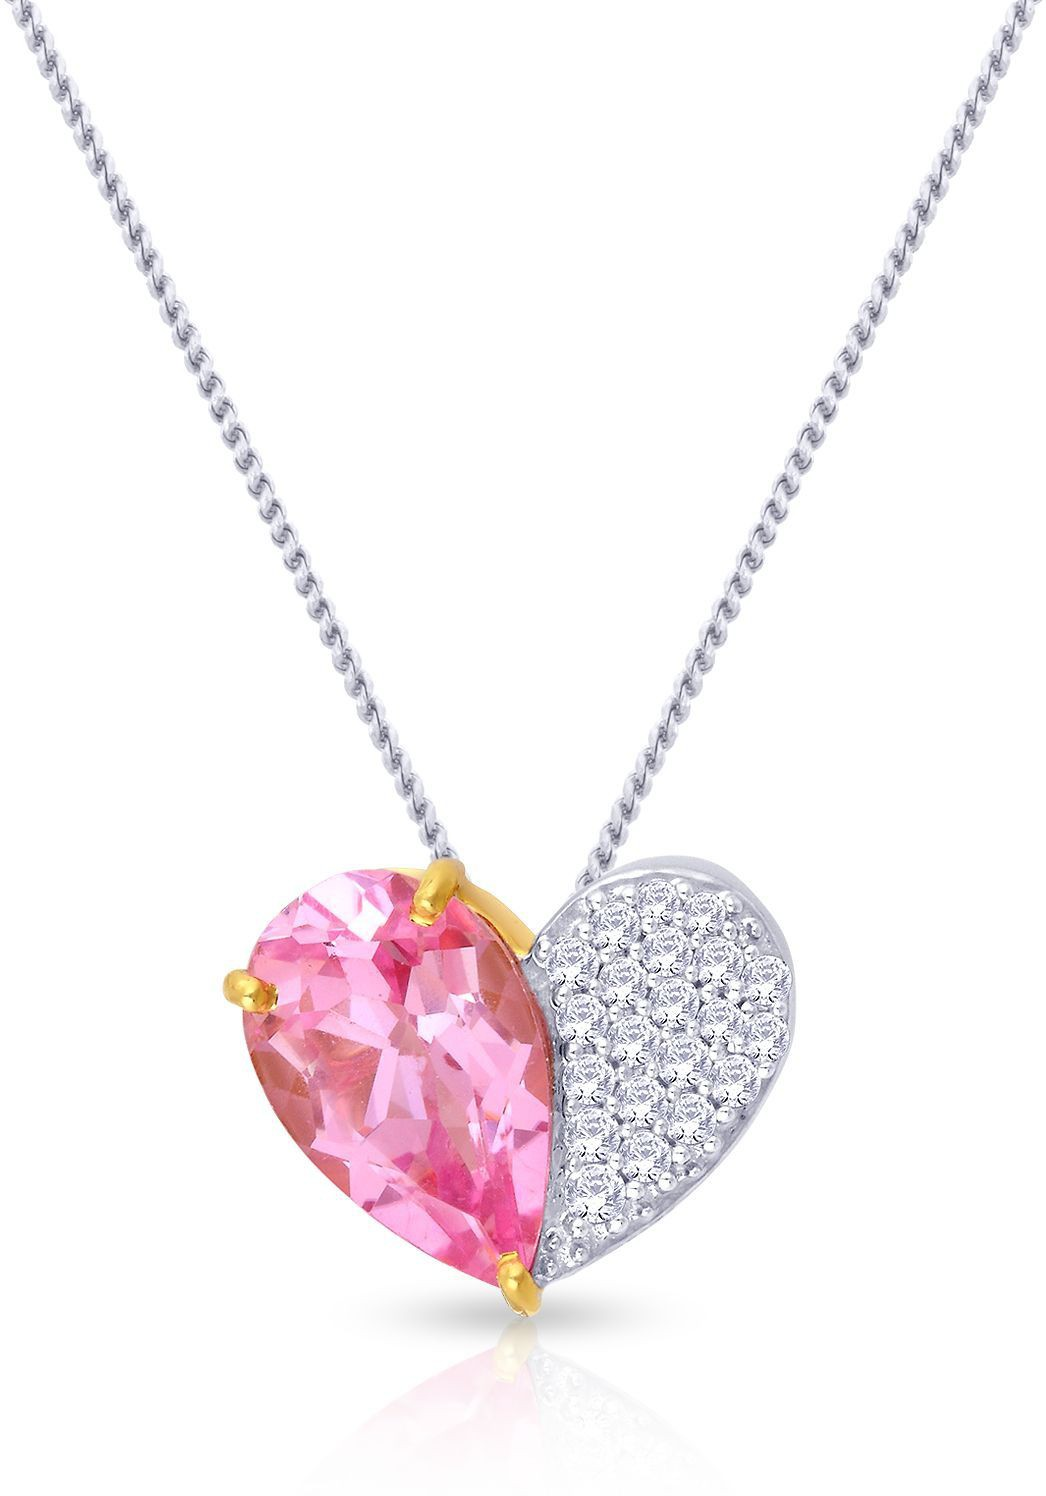 Deals - Delhi - Pendants <br> Premium Collection<br> Category - jewellery<br> Business - Flipkart.com